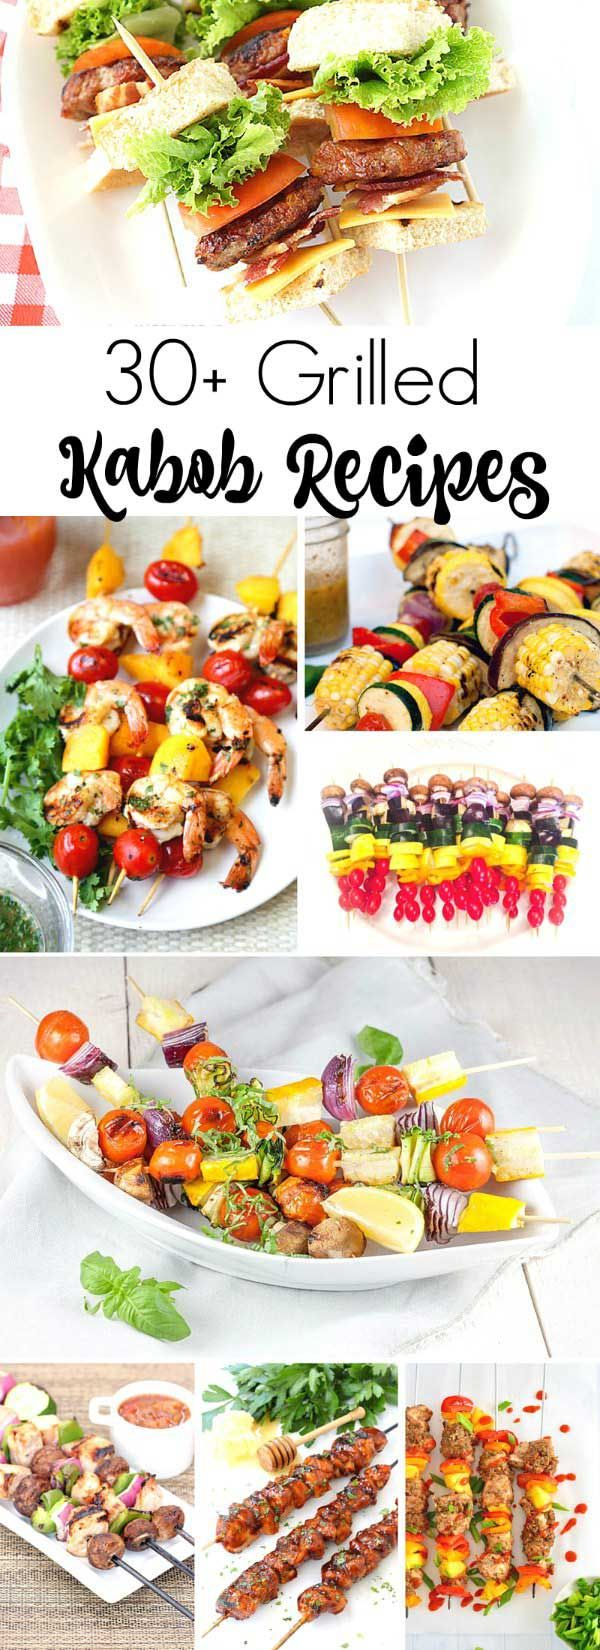 30+ Grilled Kabob Recipes, Including Steak, Chicken, Shrimp, and Vegetables Kabobs.